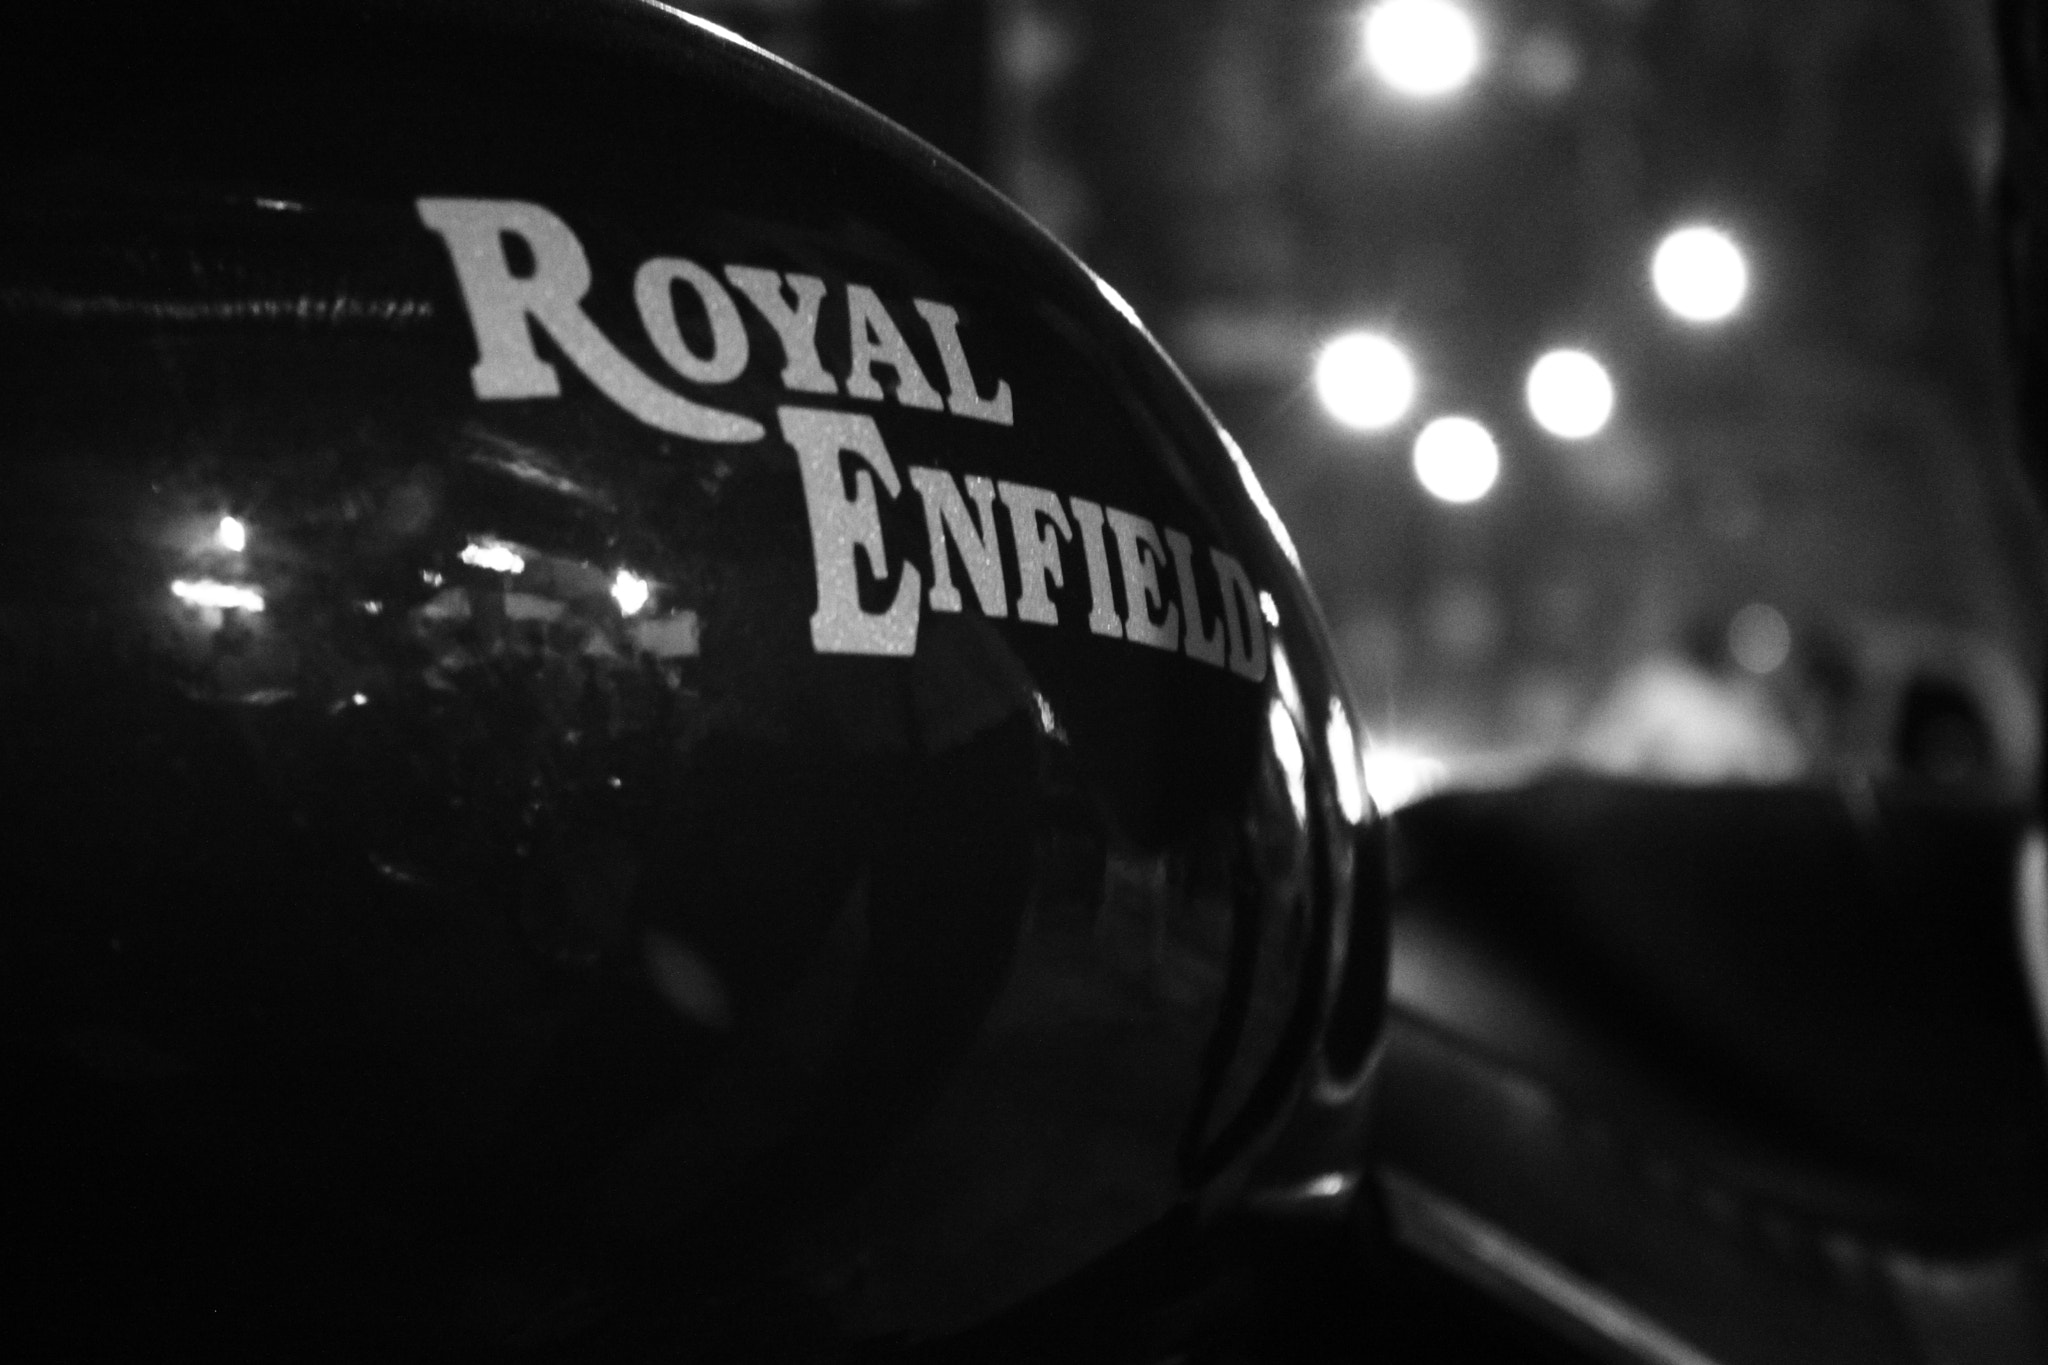 Photograph The Royal Enfield. by Ninad Sethi on 500px